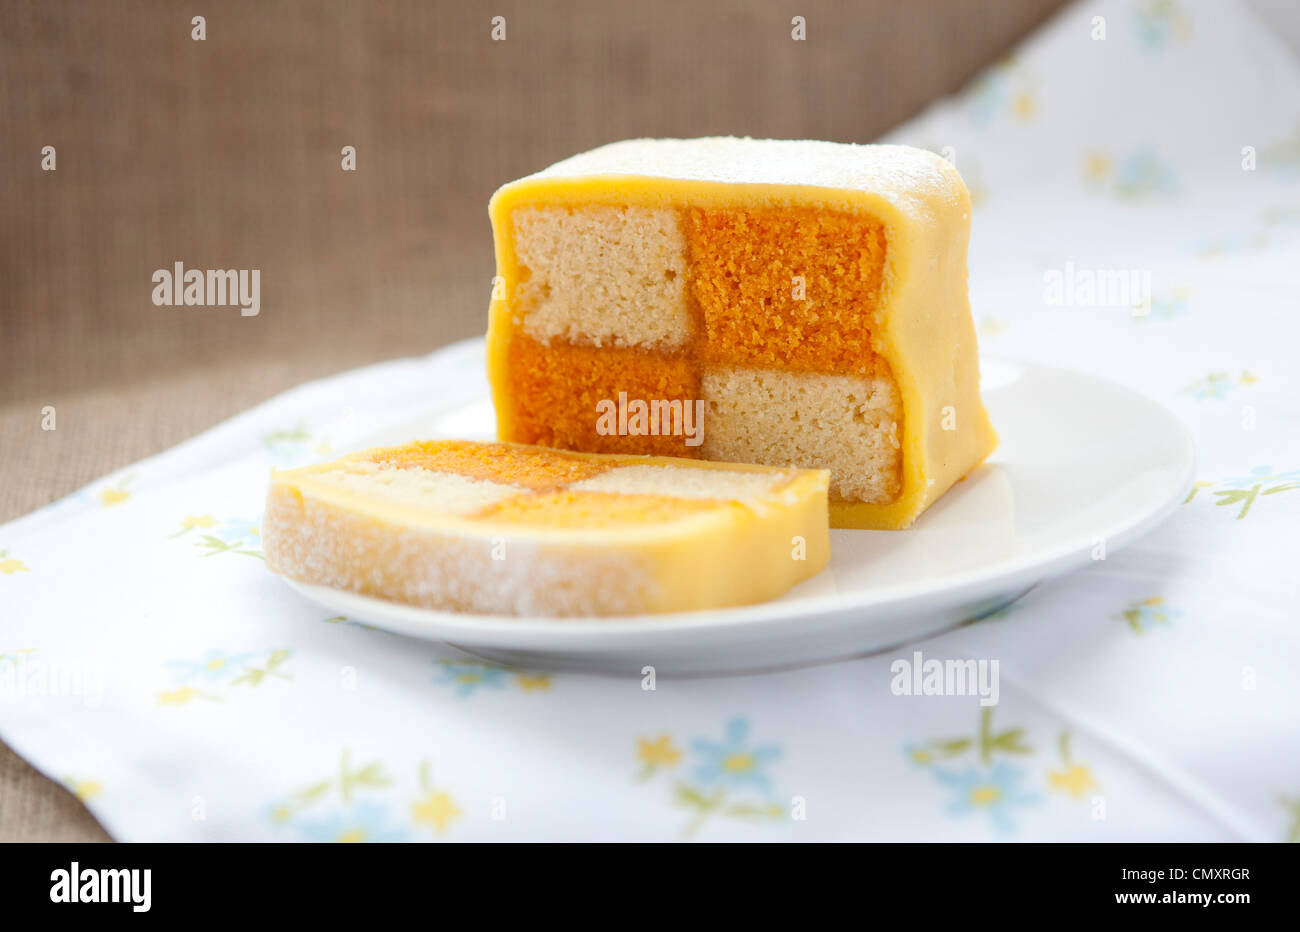 Homemade Battenburg cake on a floral sheet against hessian material. Picnic look inside. - Stock Image